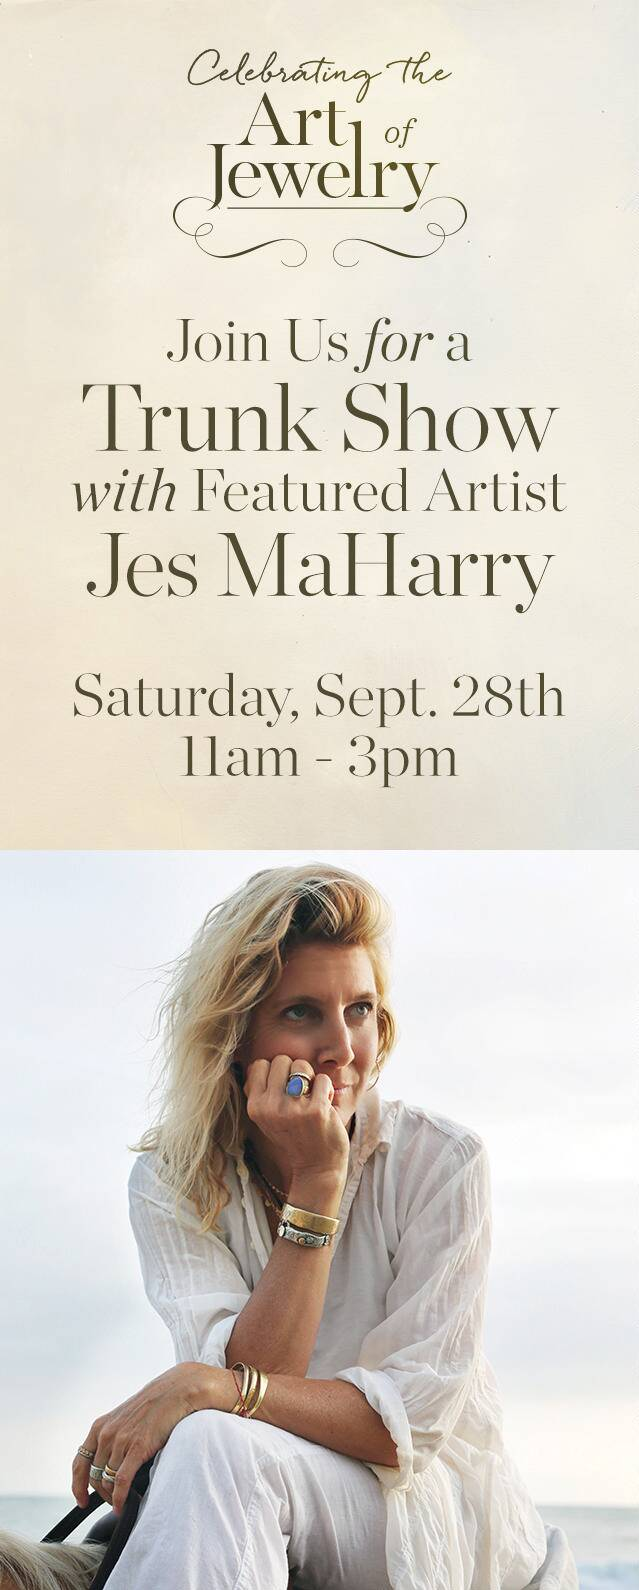 Join Jes MaHarry for a Trunk Show - Sep. 28th